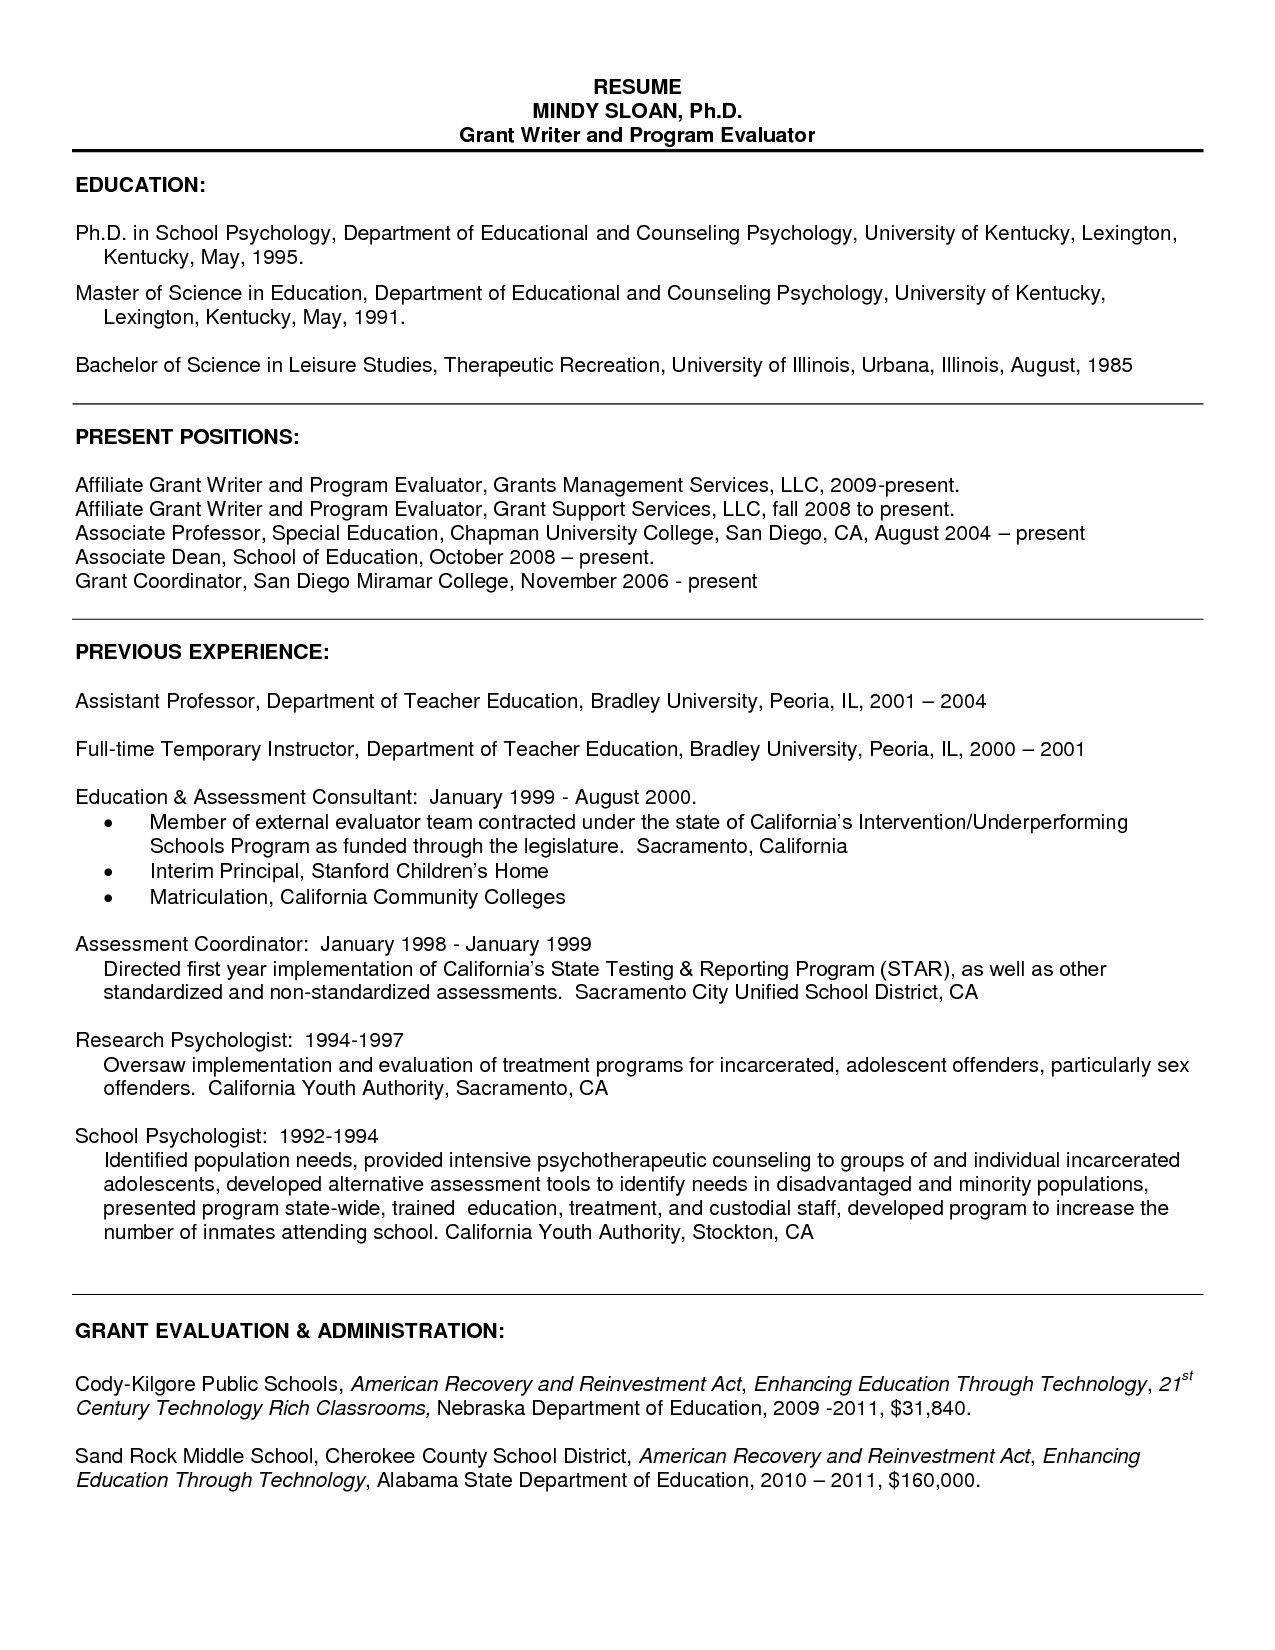 Student Resume Template Resume Sample For Psychology Graduate  Resume Sample For